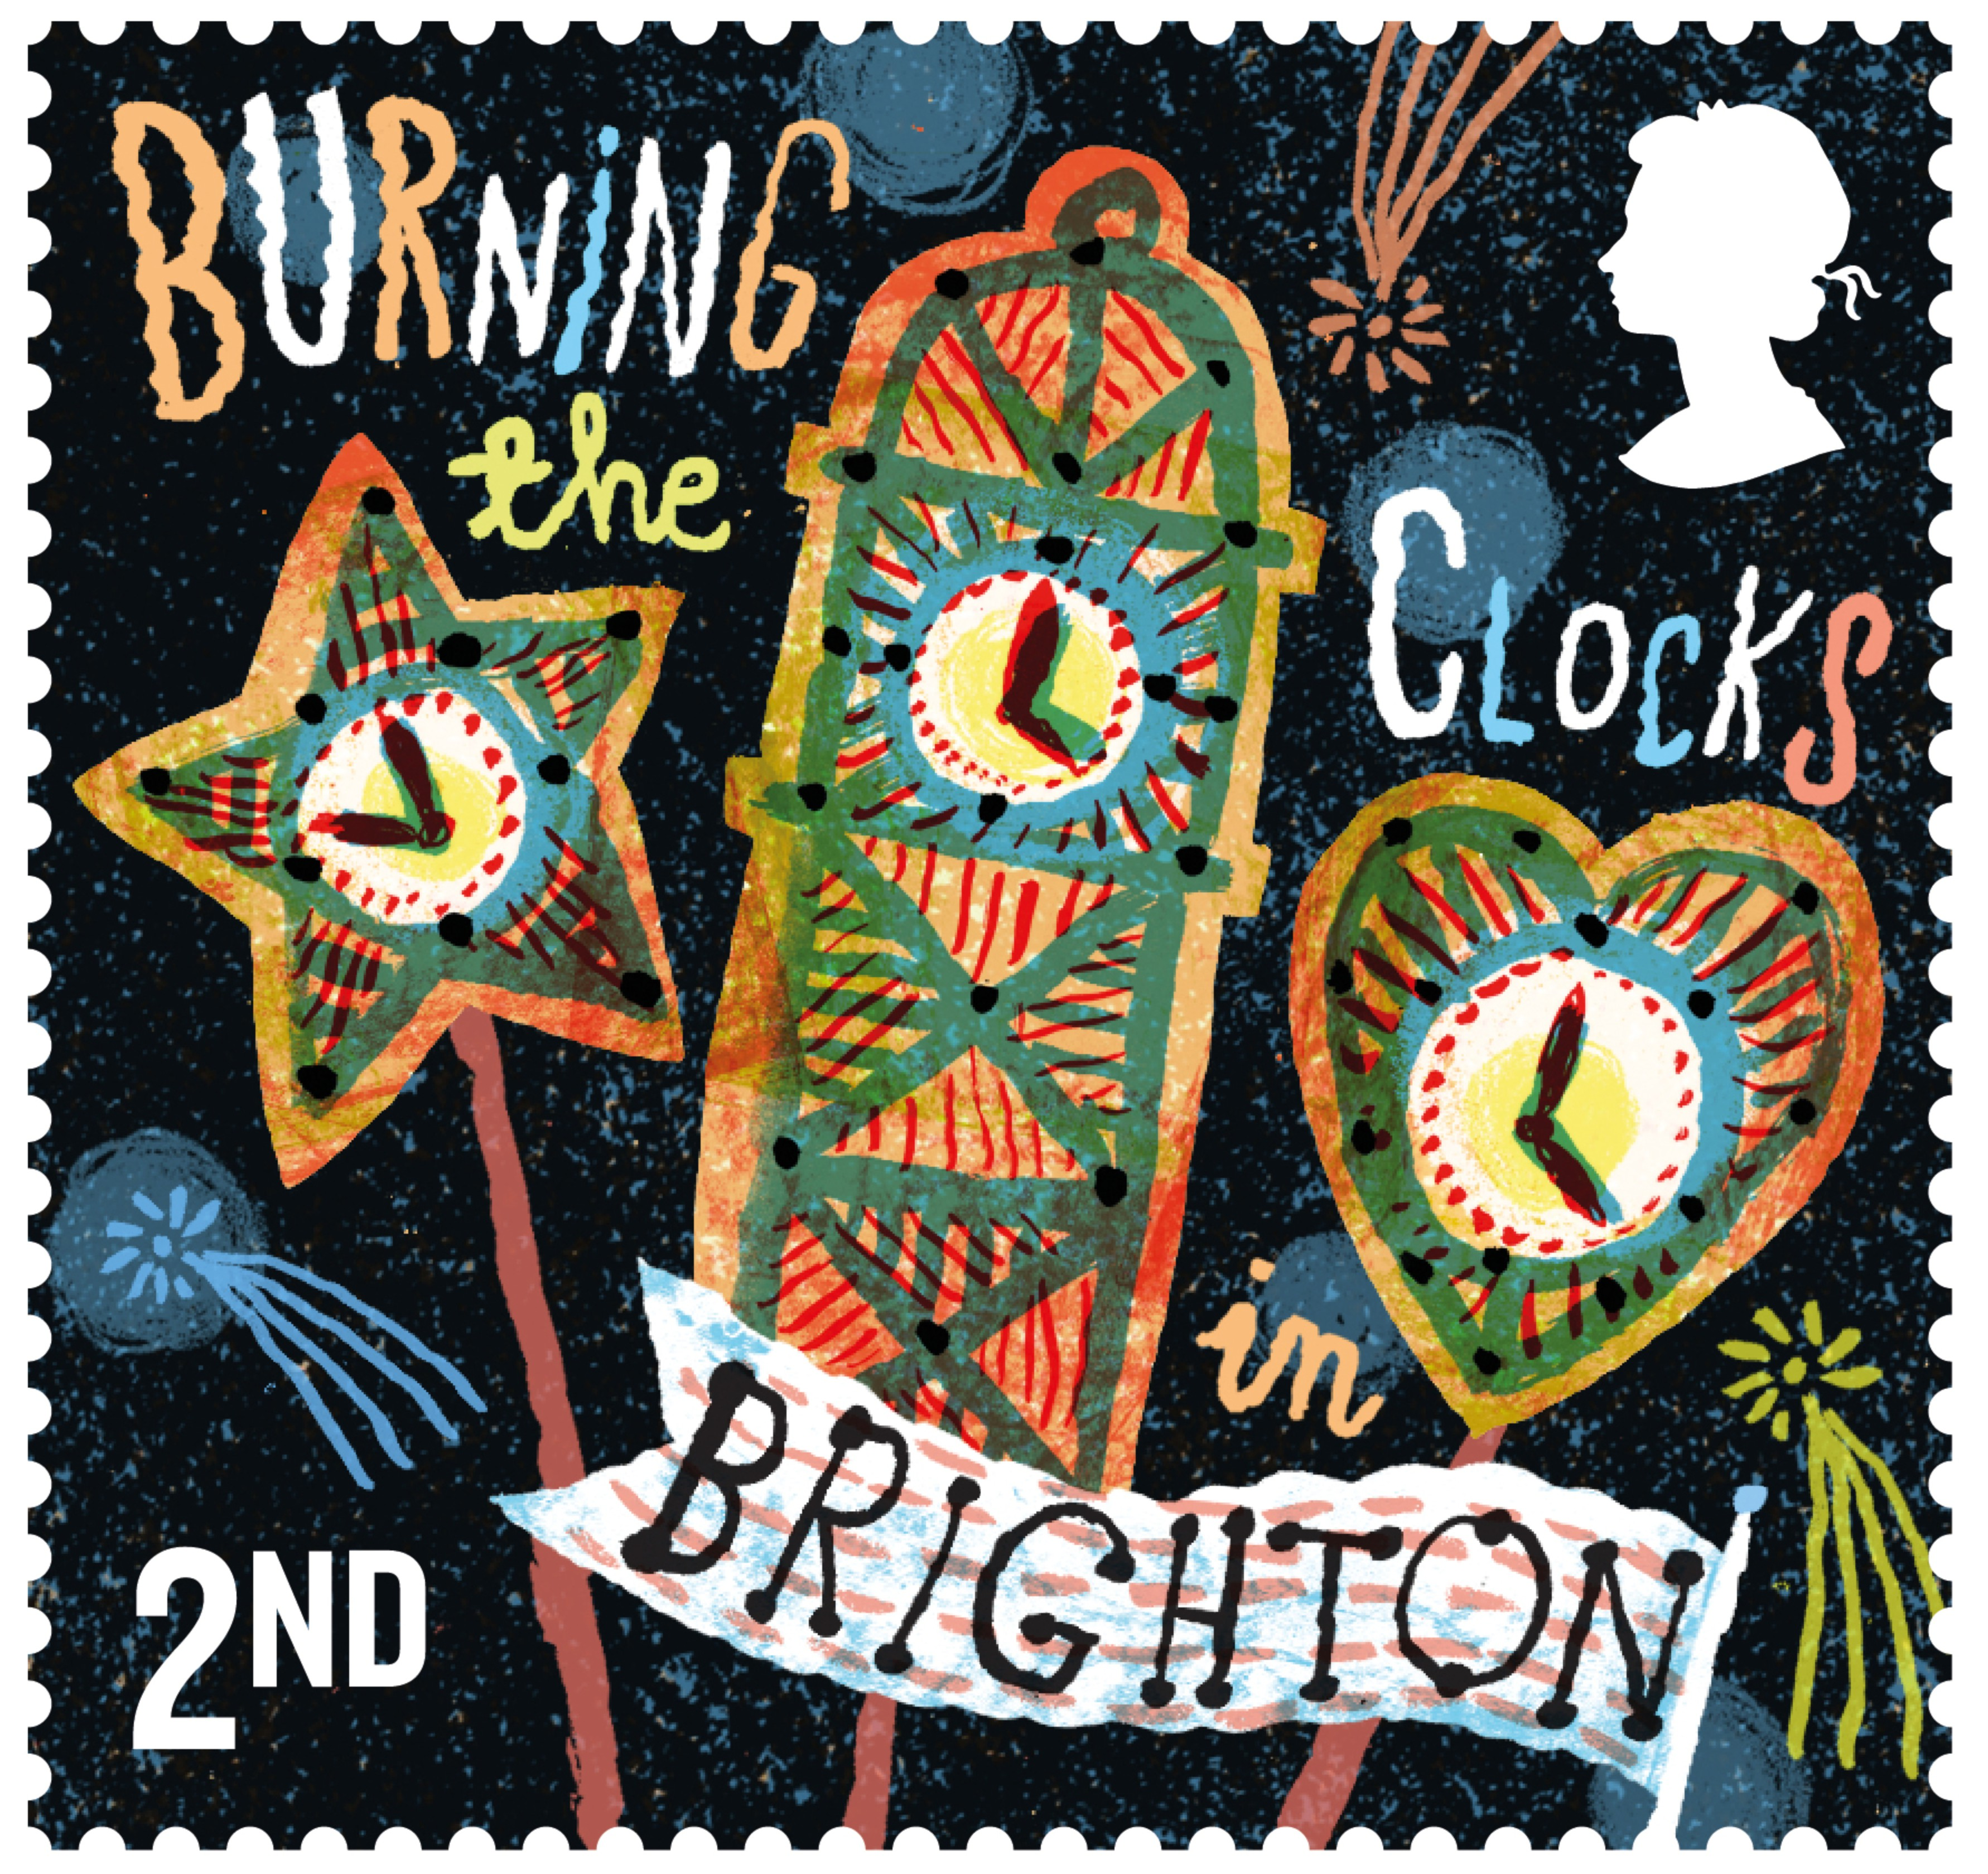 Brighton and Hove News » Burning the Clocks featured in new stamp